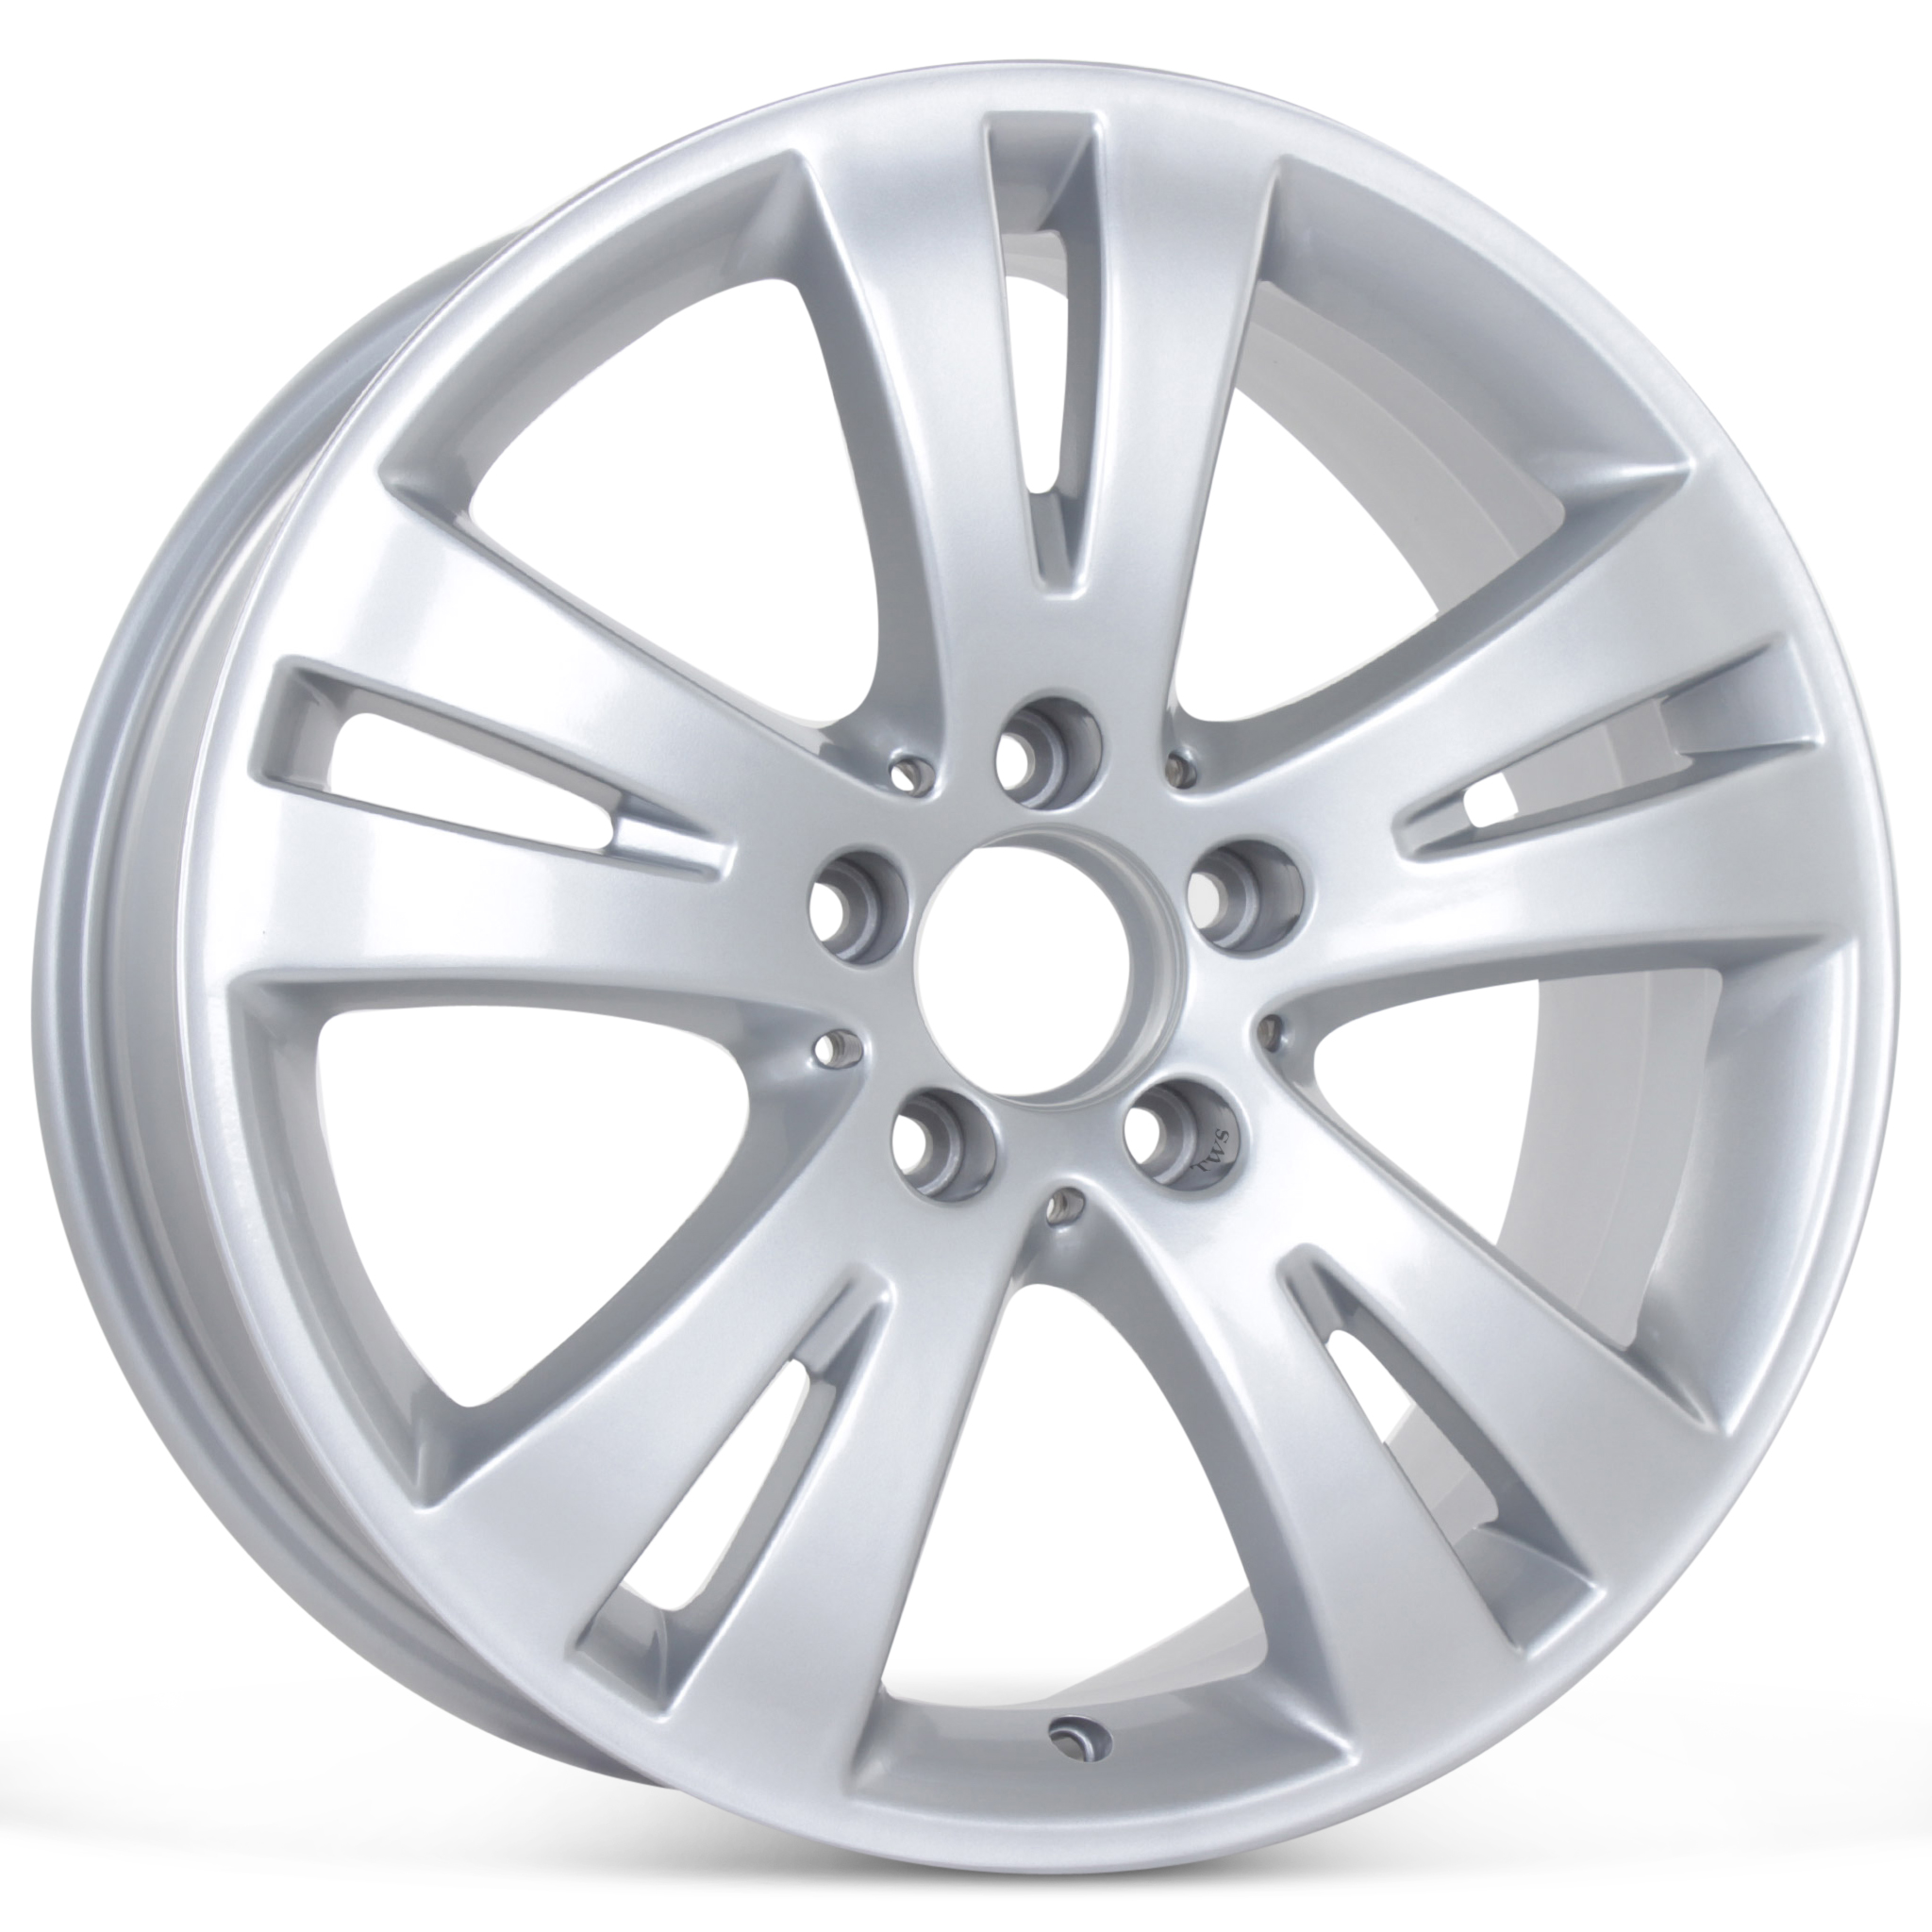 New 17 alloy wheel for mercedes c300 c350 2008 2009 2010 for Mercedes benz c300 rims